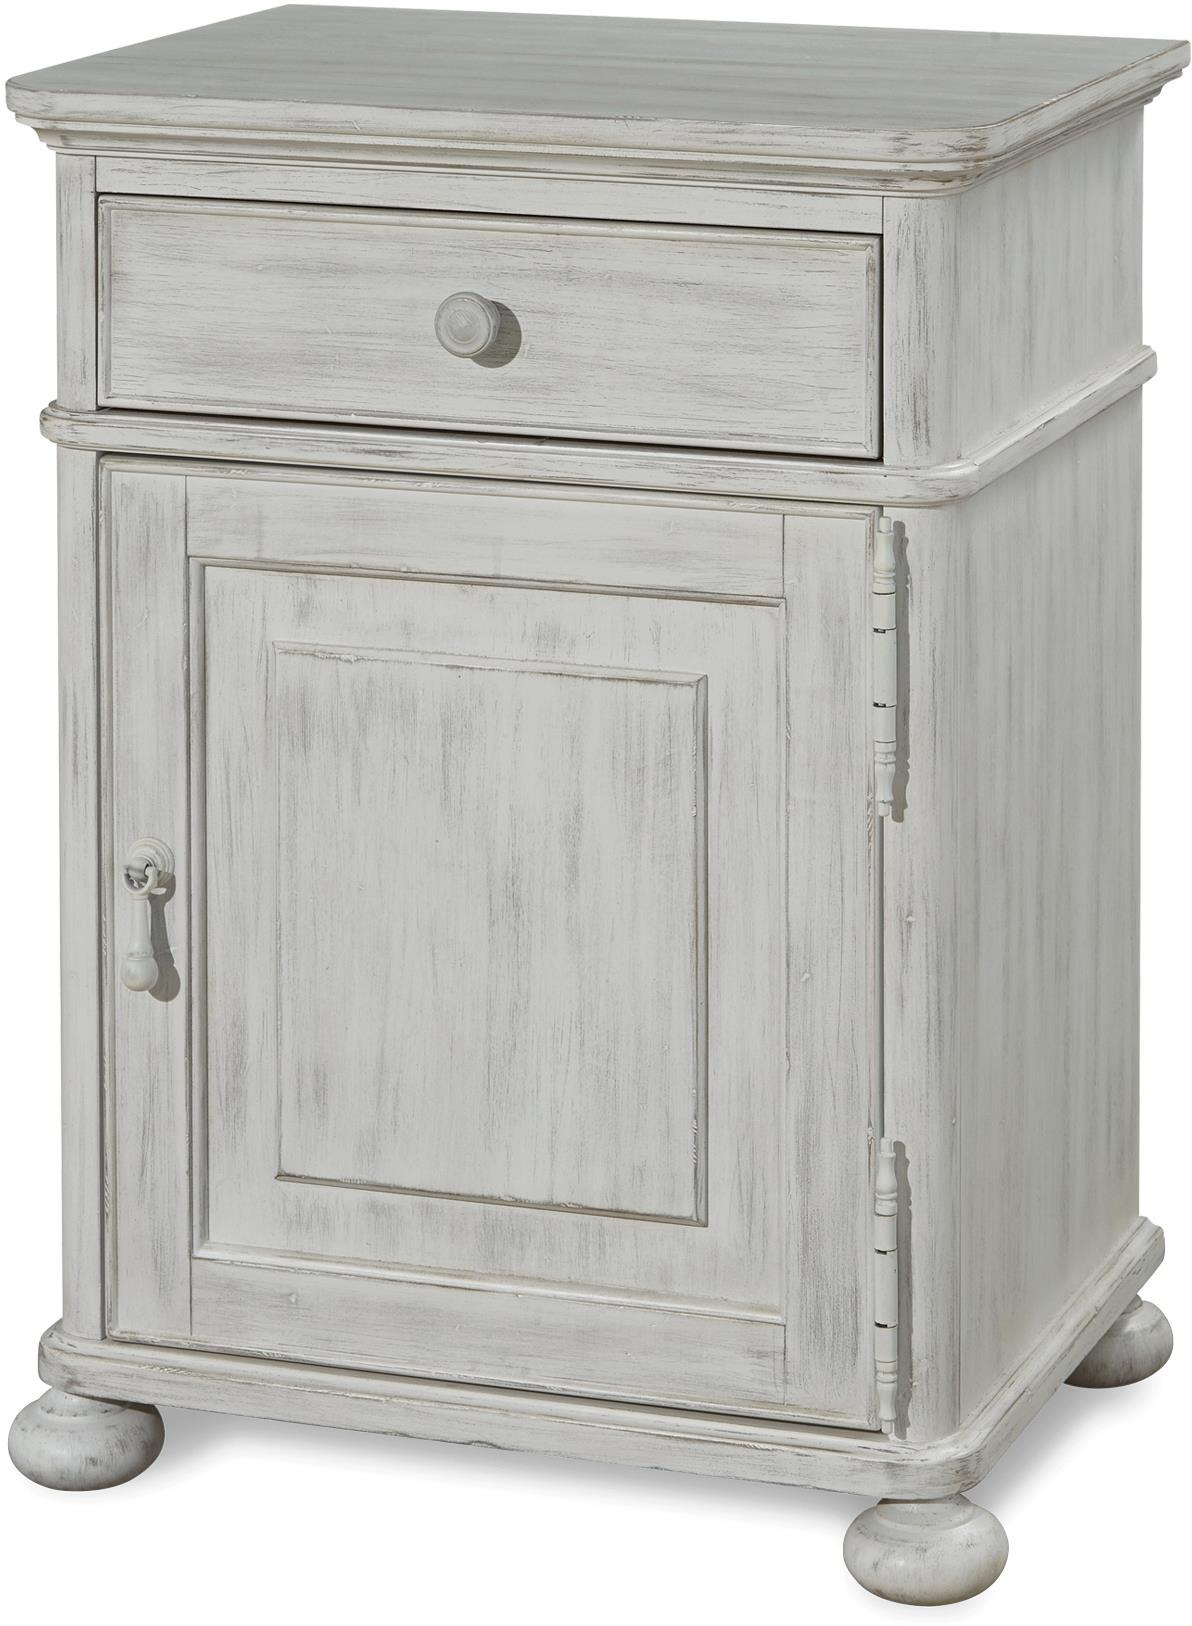 Paula Deen by Universal Dogwood Door Nightstand - Item Number: 597365